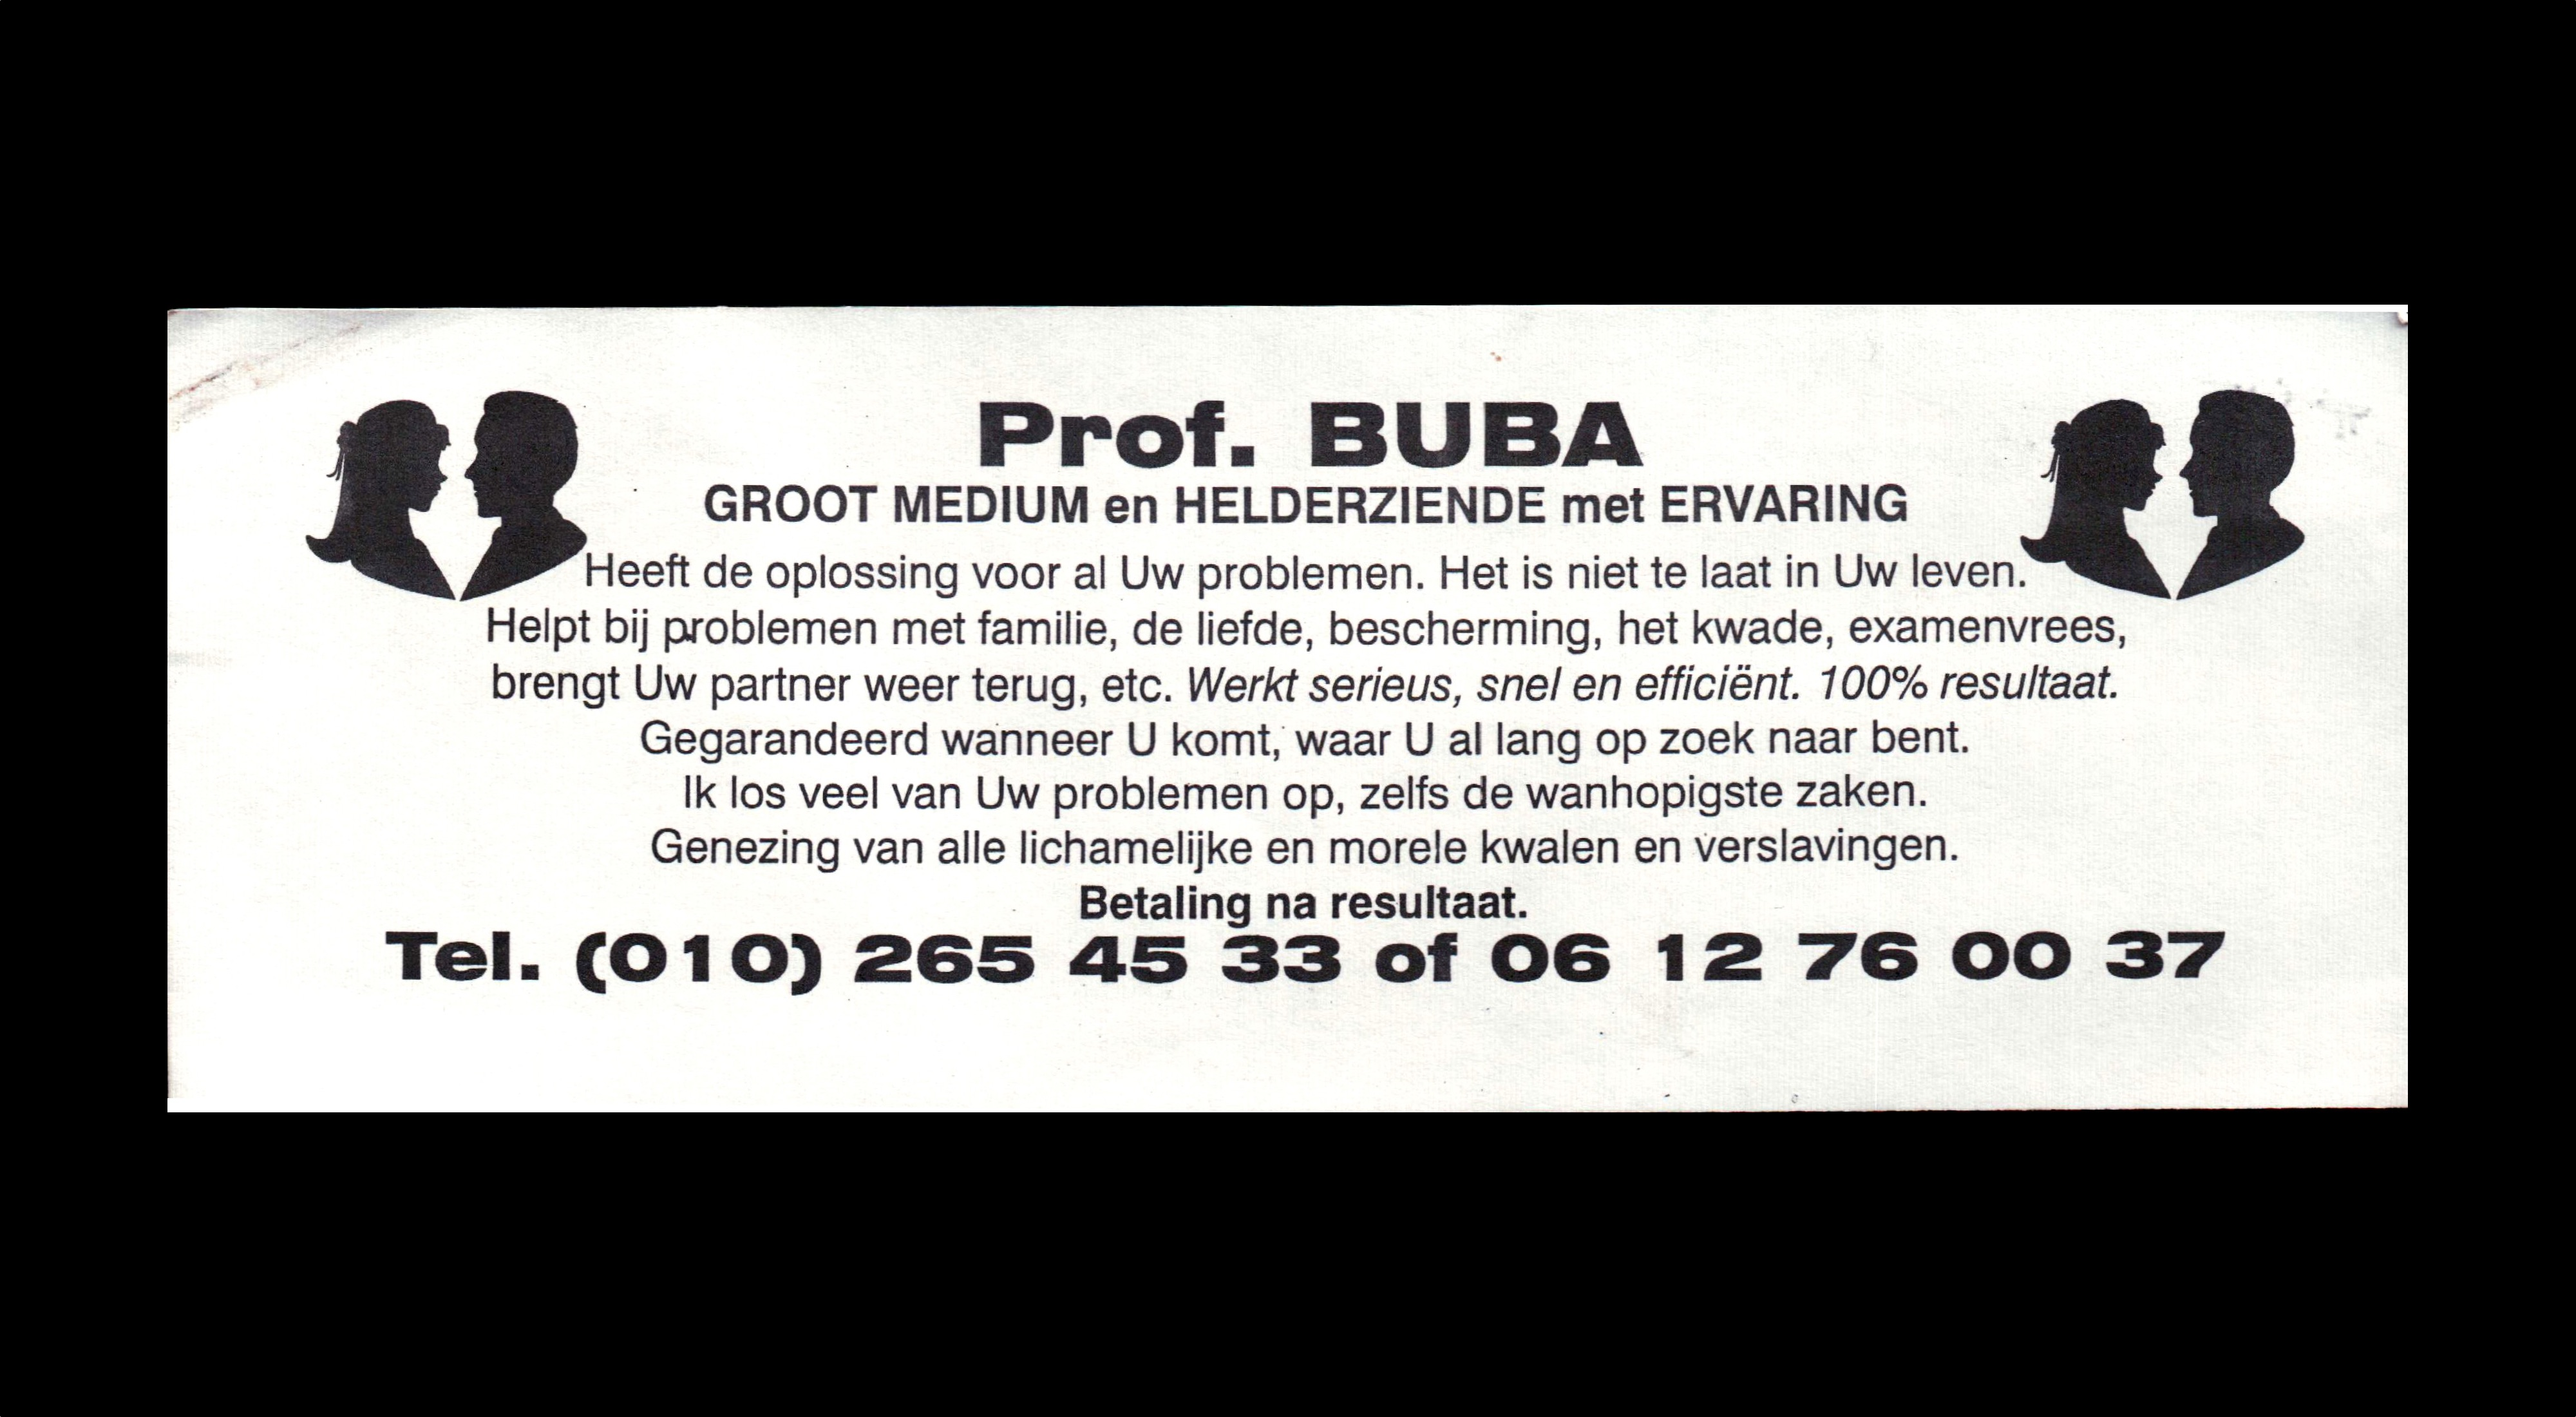 card of Prof. BUBA